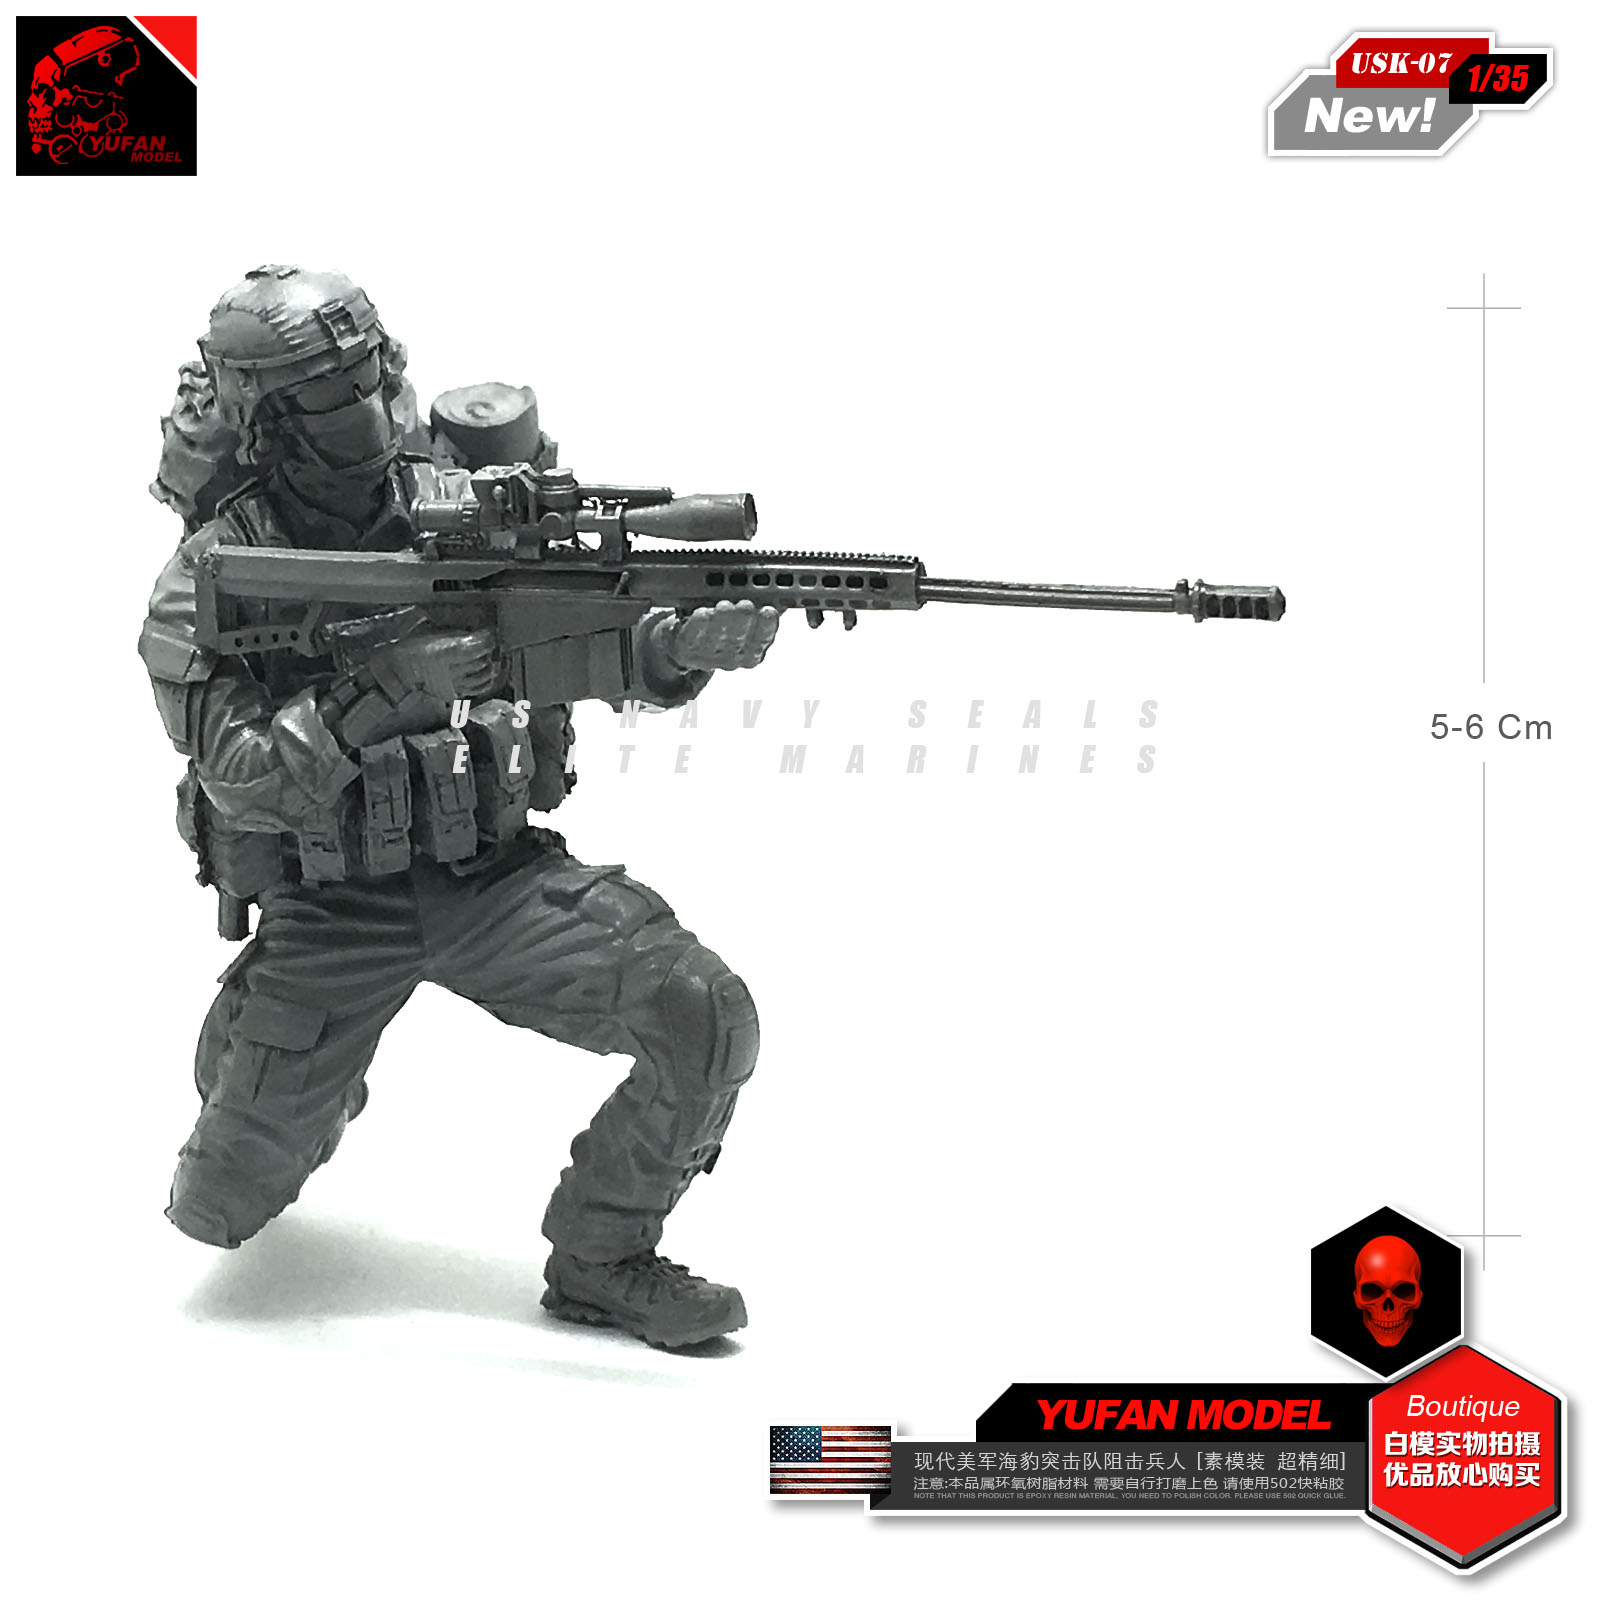 Yufan Model 1/35 Modern Us Seal Blocking Soldier Resin Model Suit Model Kit Usk-07